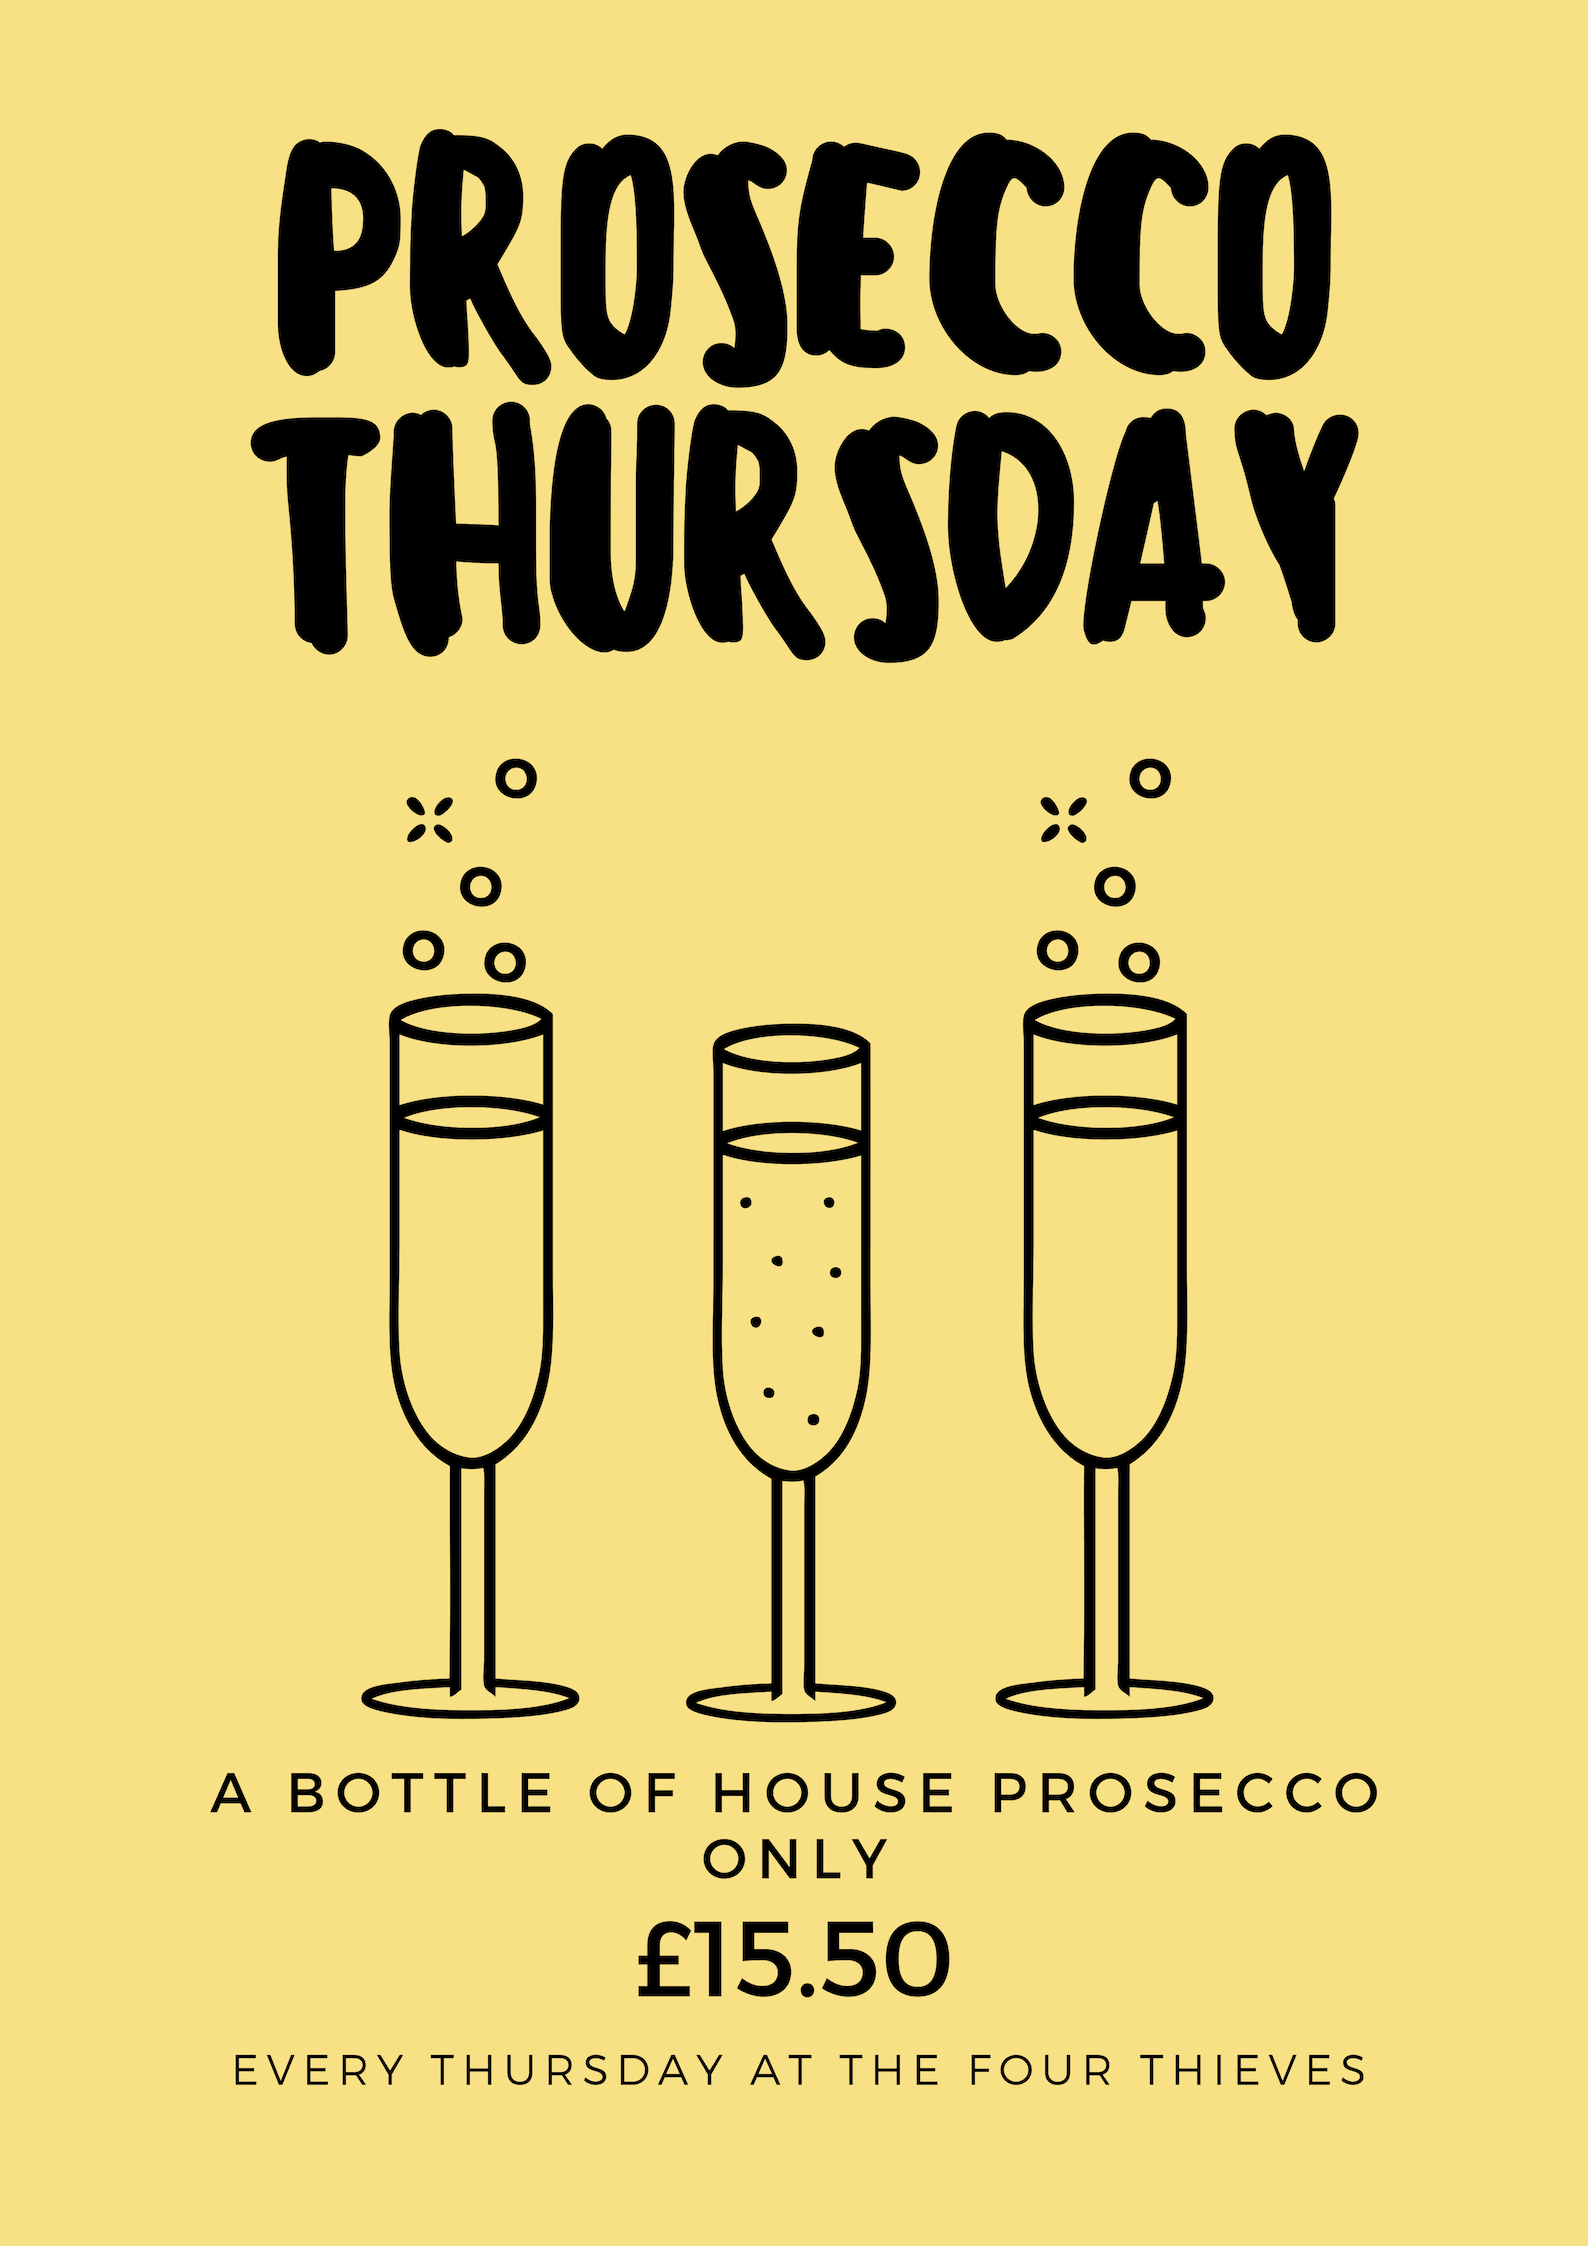 prosecco thursday (3).jpg